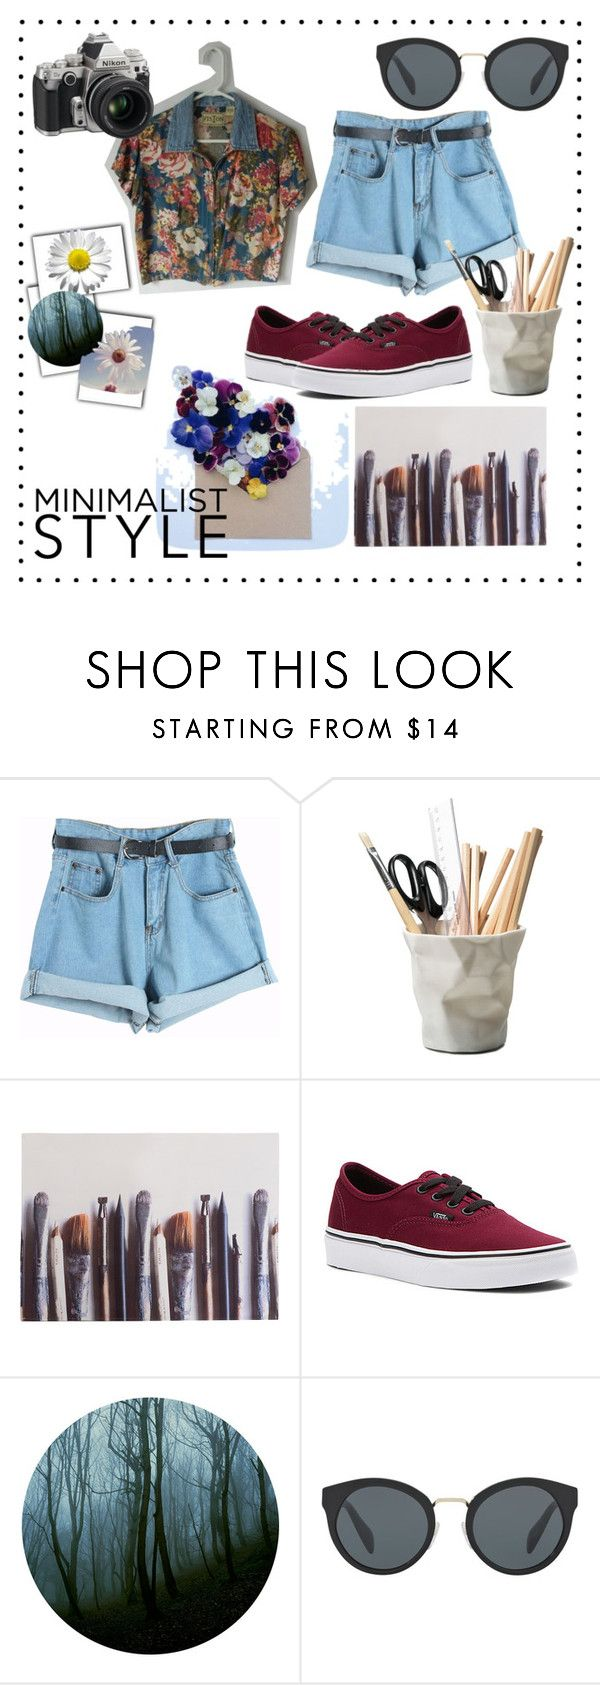 """Sin título #246"" by camilazeballo on Polyvore featuring moda, Chicnova Fashion, ESSEY, Ella Doran, Vans, Nikon y Prada"